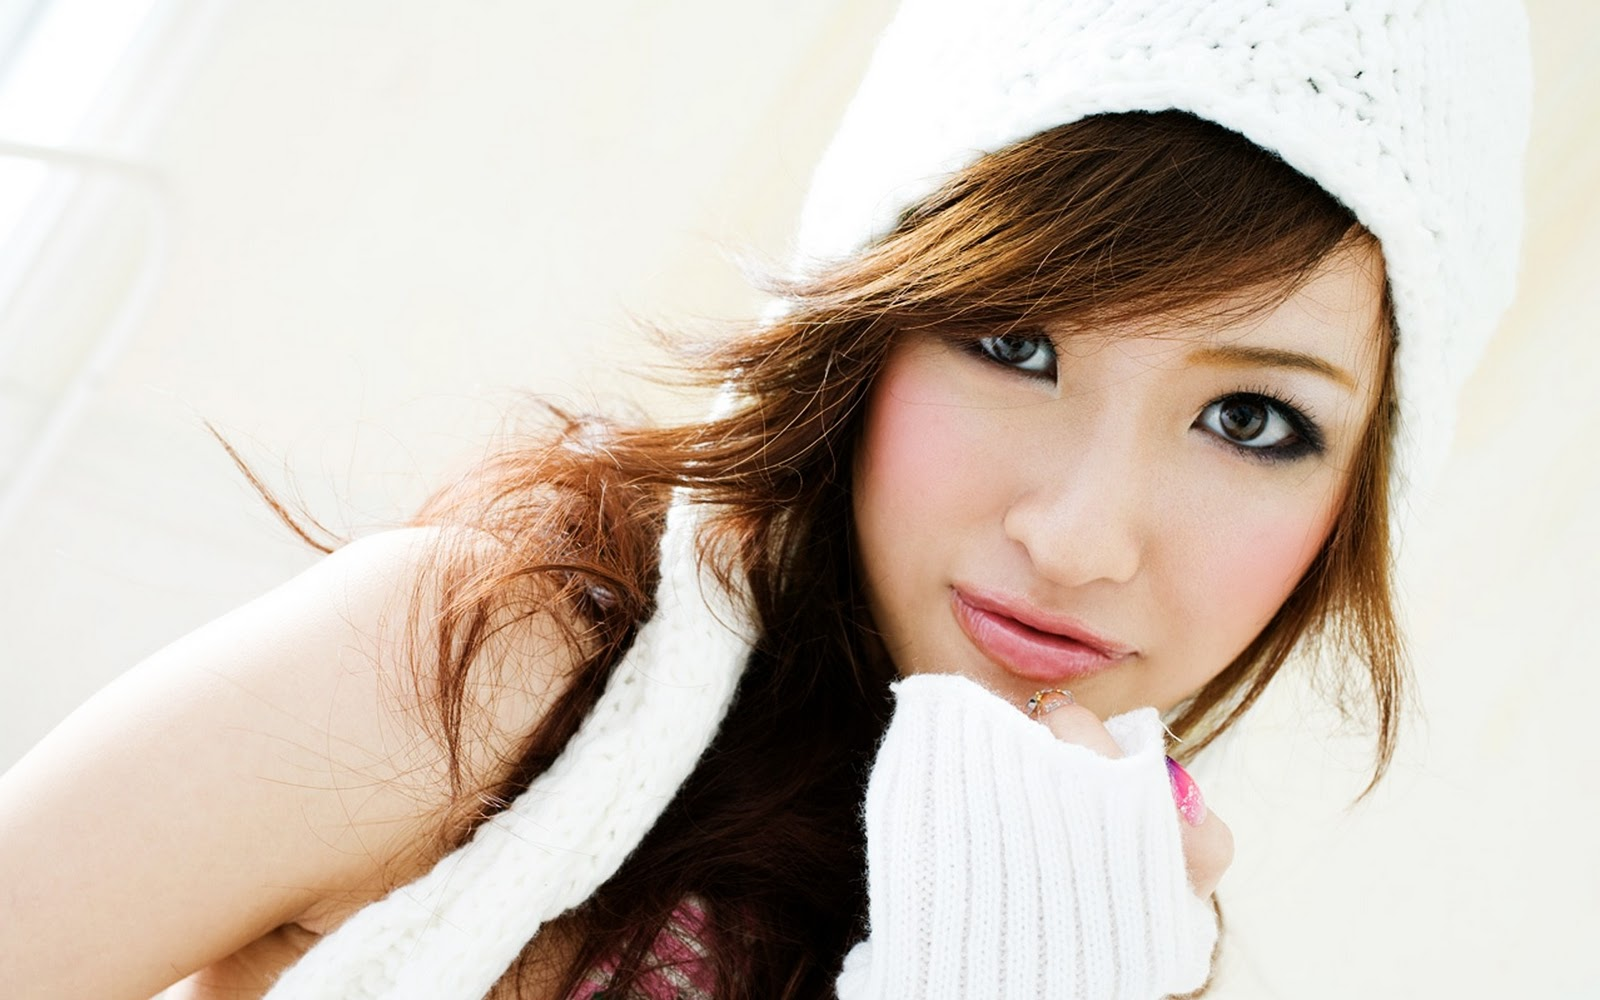 los ojos single asian girls Colombian dating single men  over the years i learn to love the chinese  culture and women inner beauty which is so hard  dicen que los ojos son las  ventan  i'm easy going and can and will be romantic as is the way to most  ladies heart.